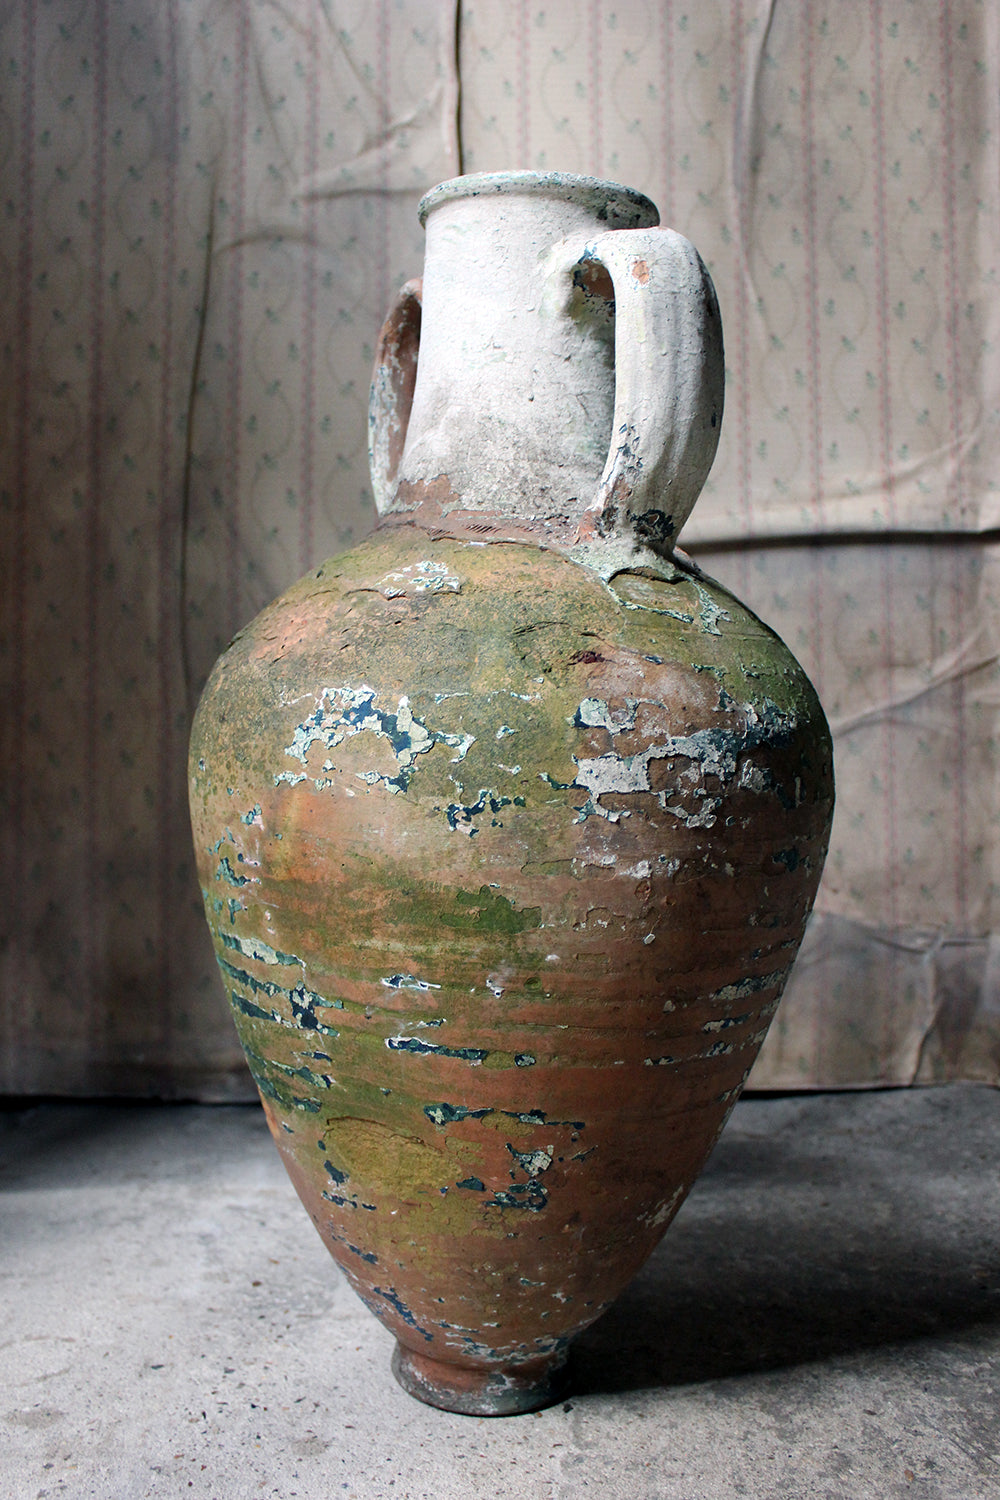 A Large & Decorative Early 20thC Italian Painted Terracotta Amphora Jar c.1900-25